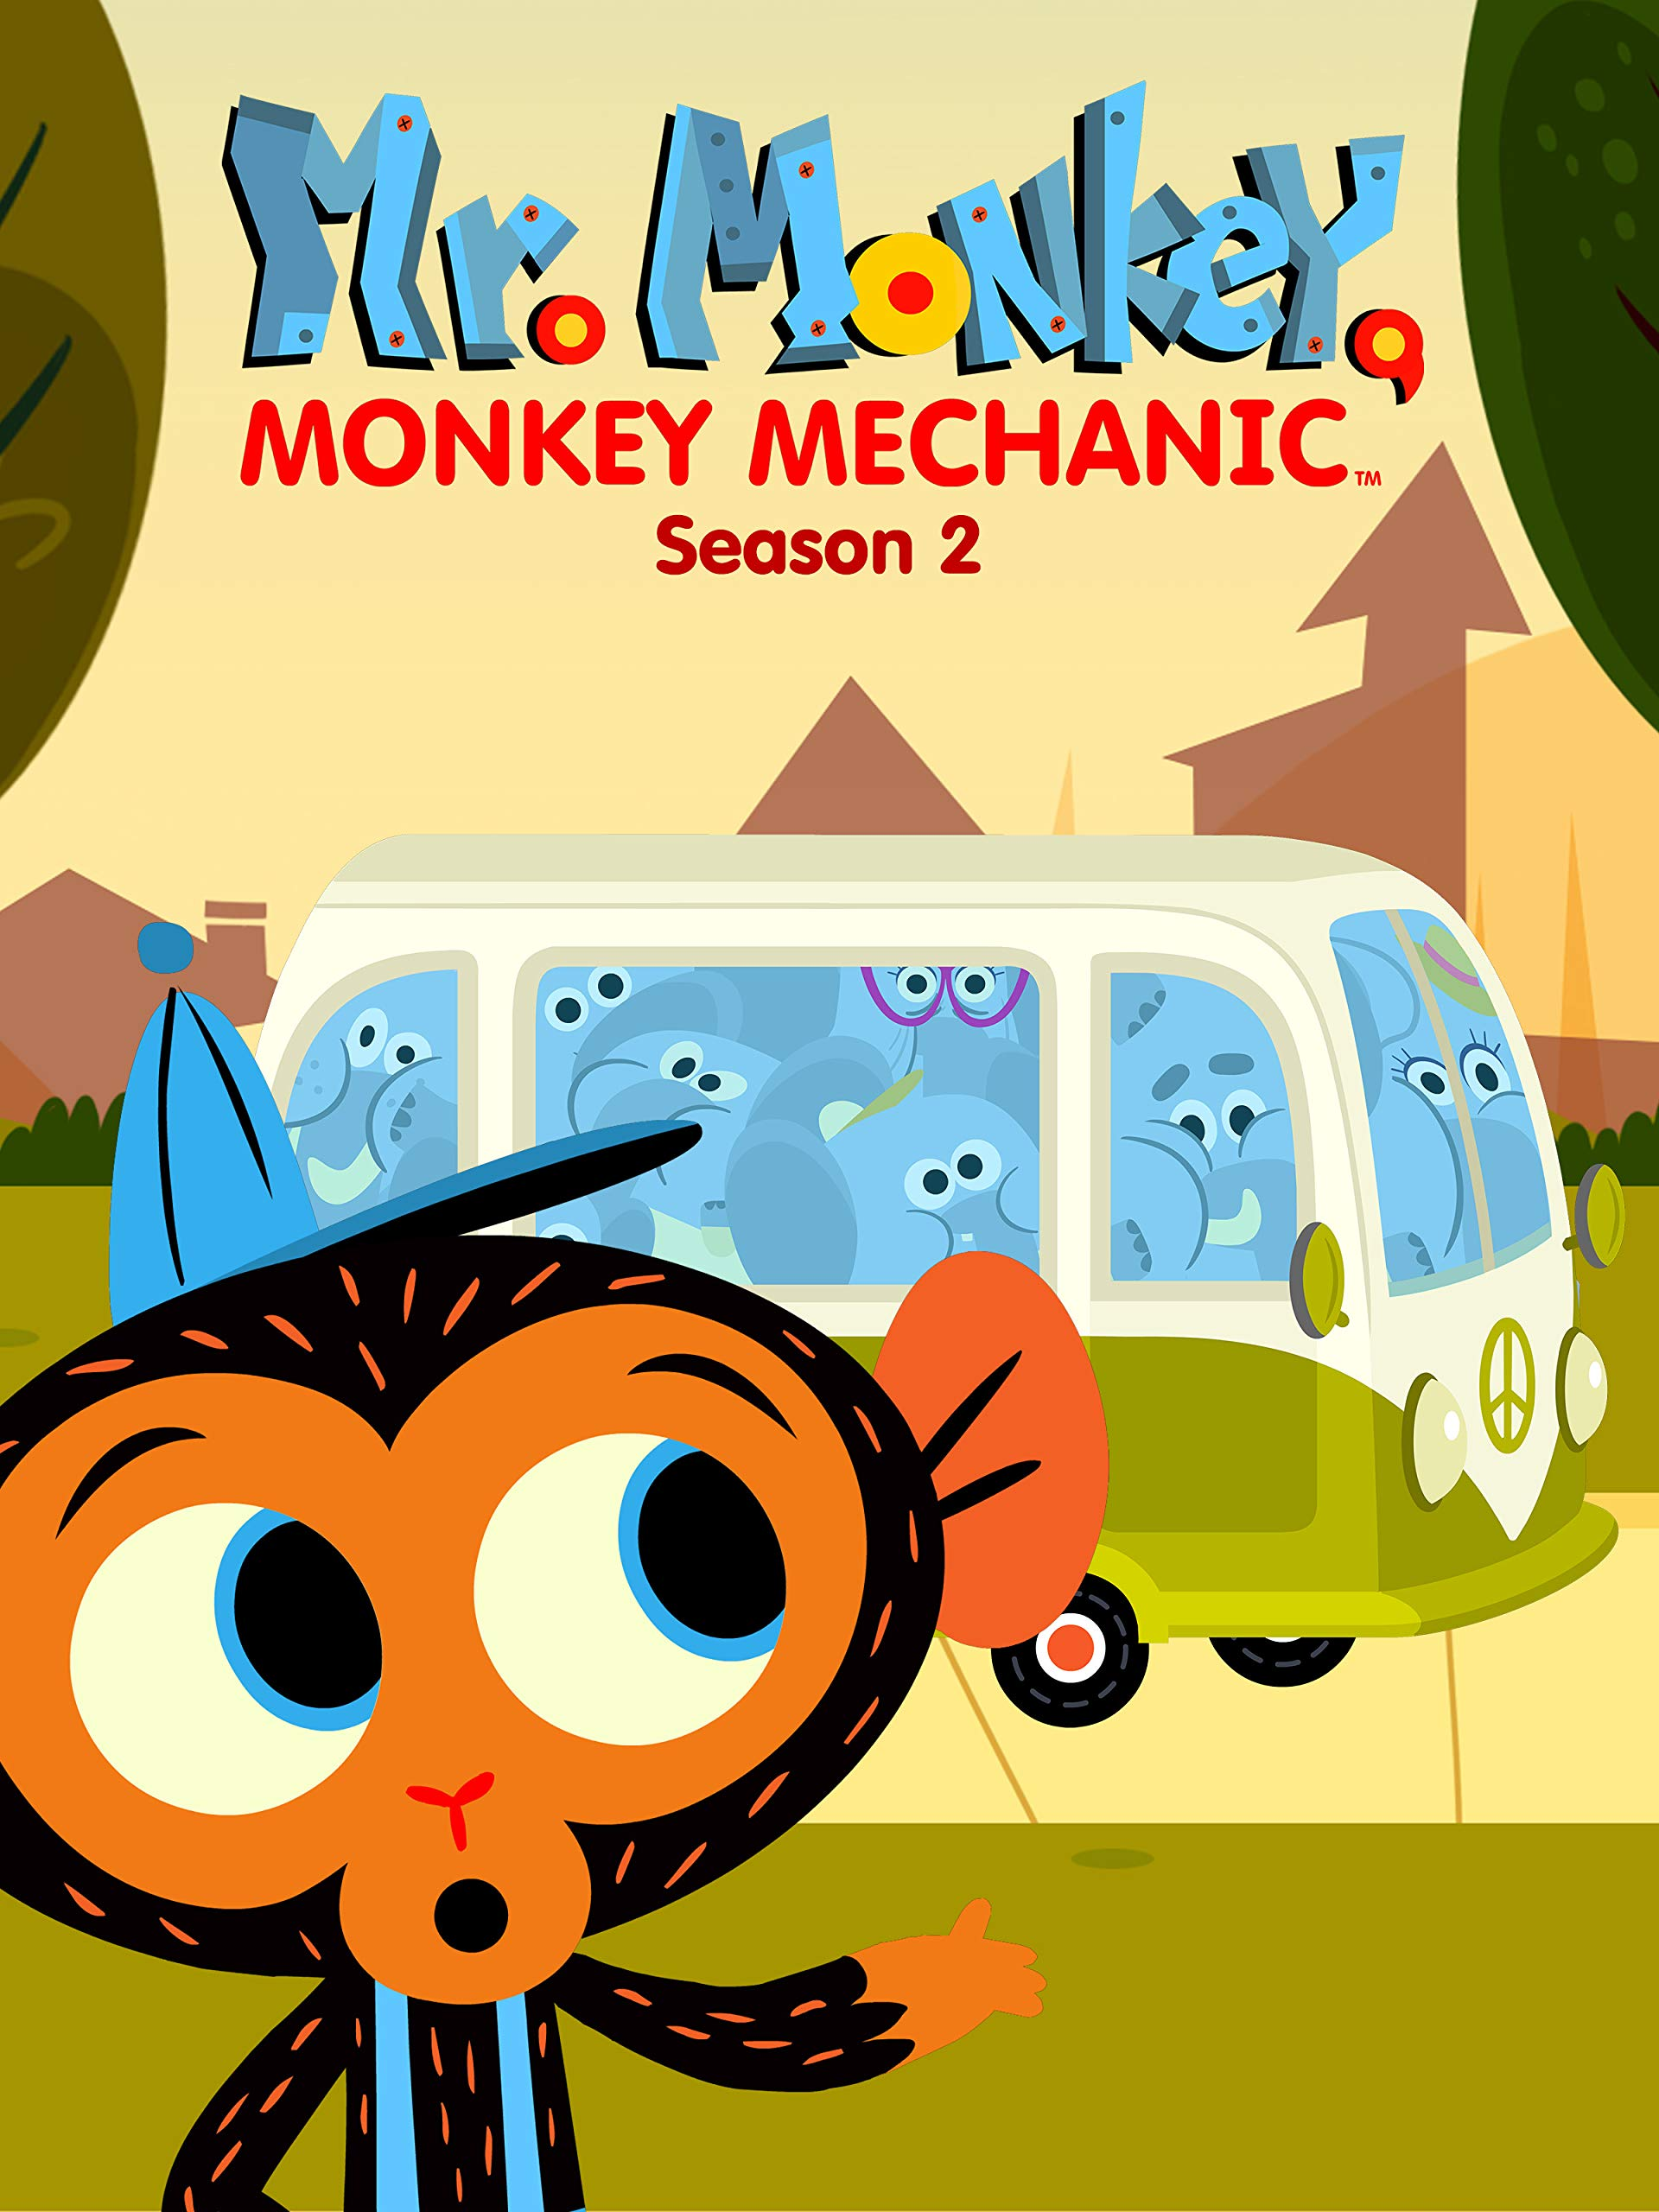 Mr. Monkey, Monkey Mechanic - Season 2